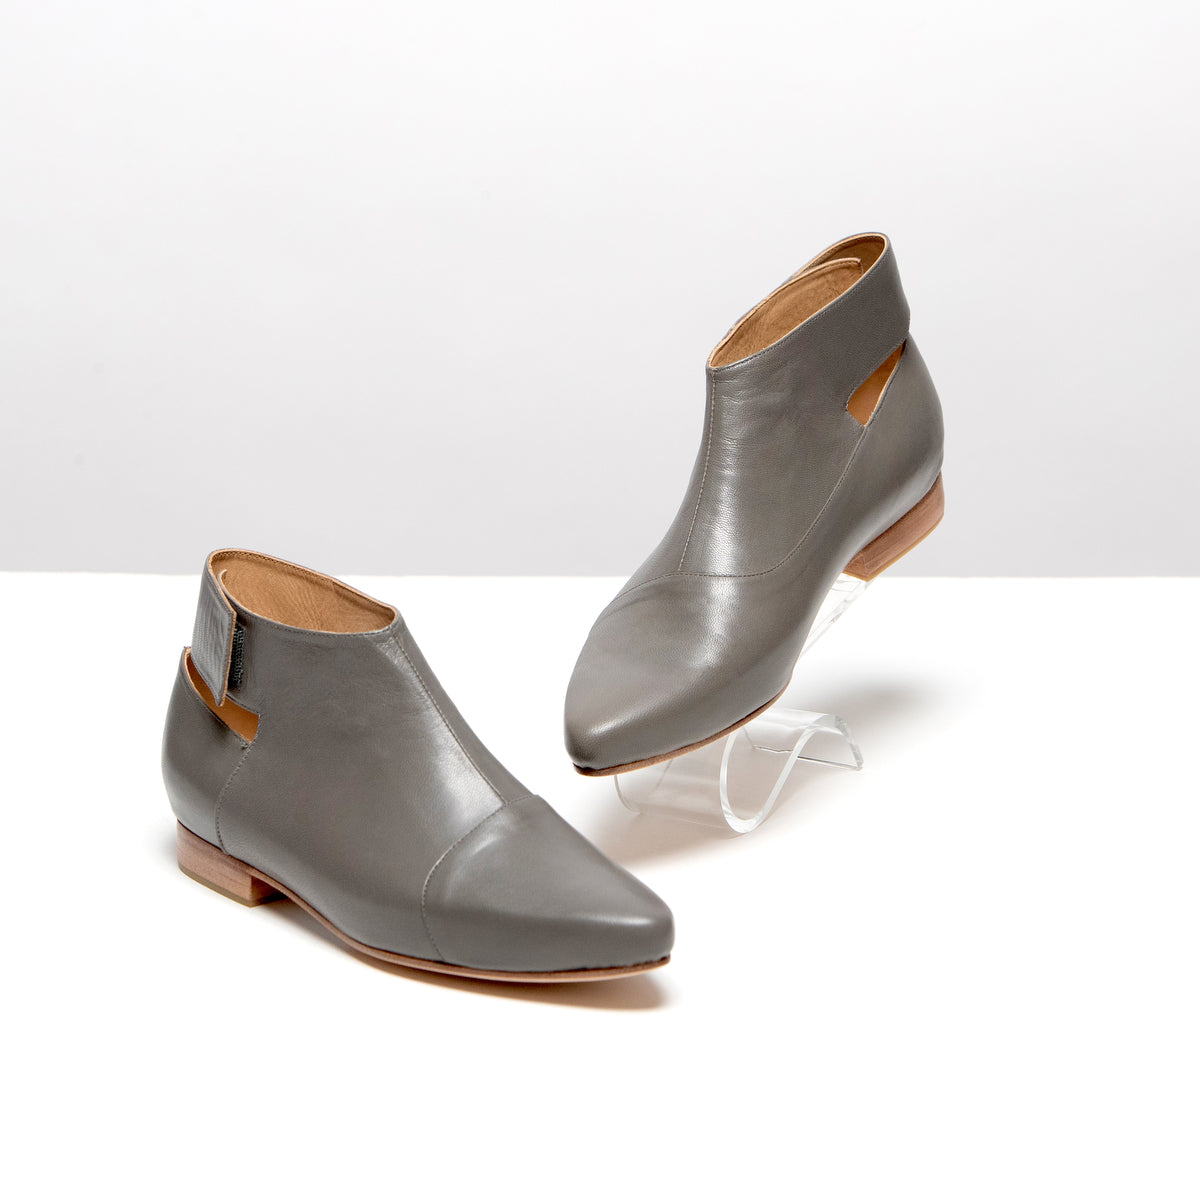 Sizif The Search Boots in Grey